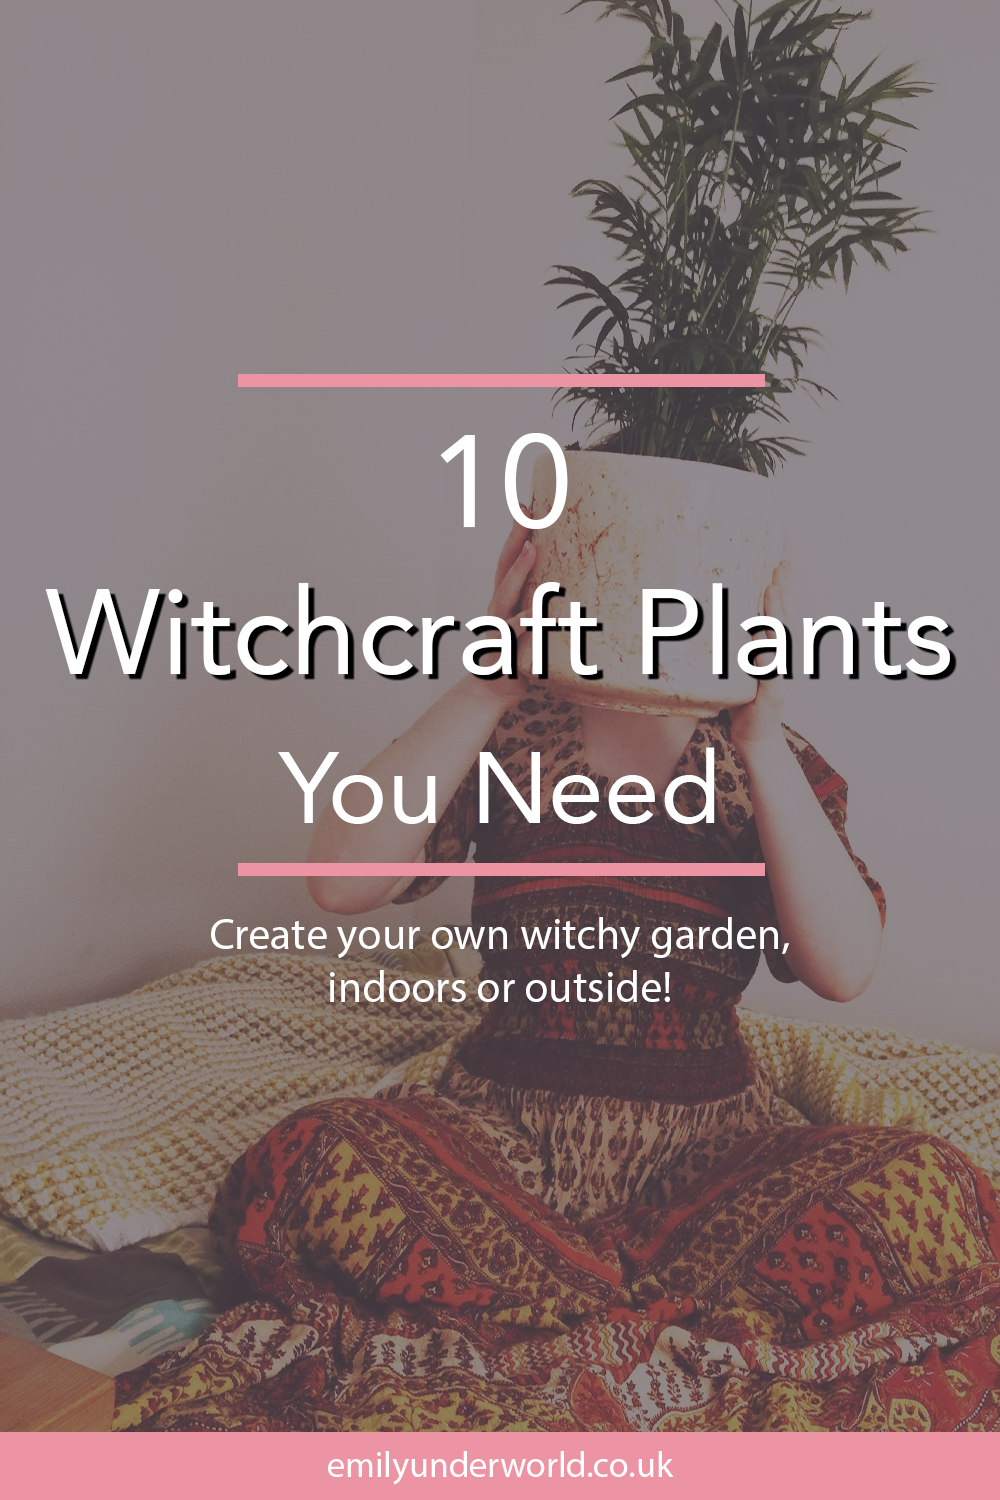 Create your own witchy garden, indoors or outside! witch garden ideas and herbs for witchcraft. witch garden plants. herbalist witch aesthetic. herbology witch aesthetic. healing plants. healing herbs.  #magick #witchcraft #witchcrafttutorial #witchtips #witchy #herbs